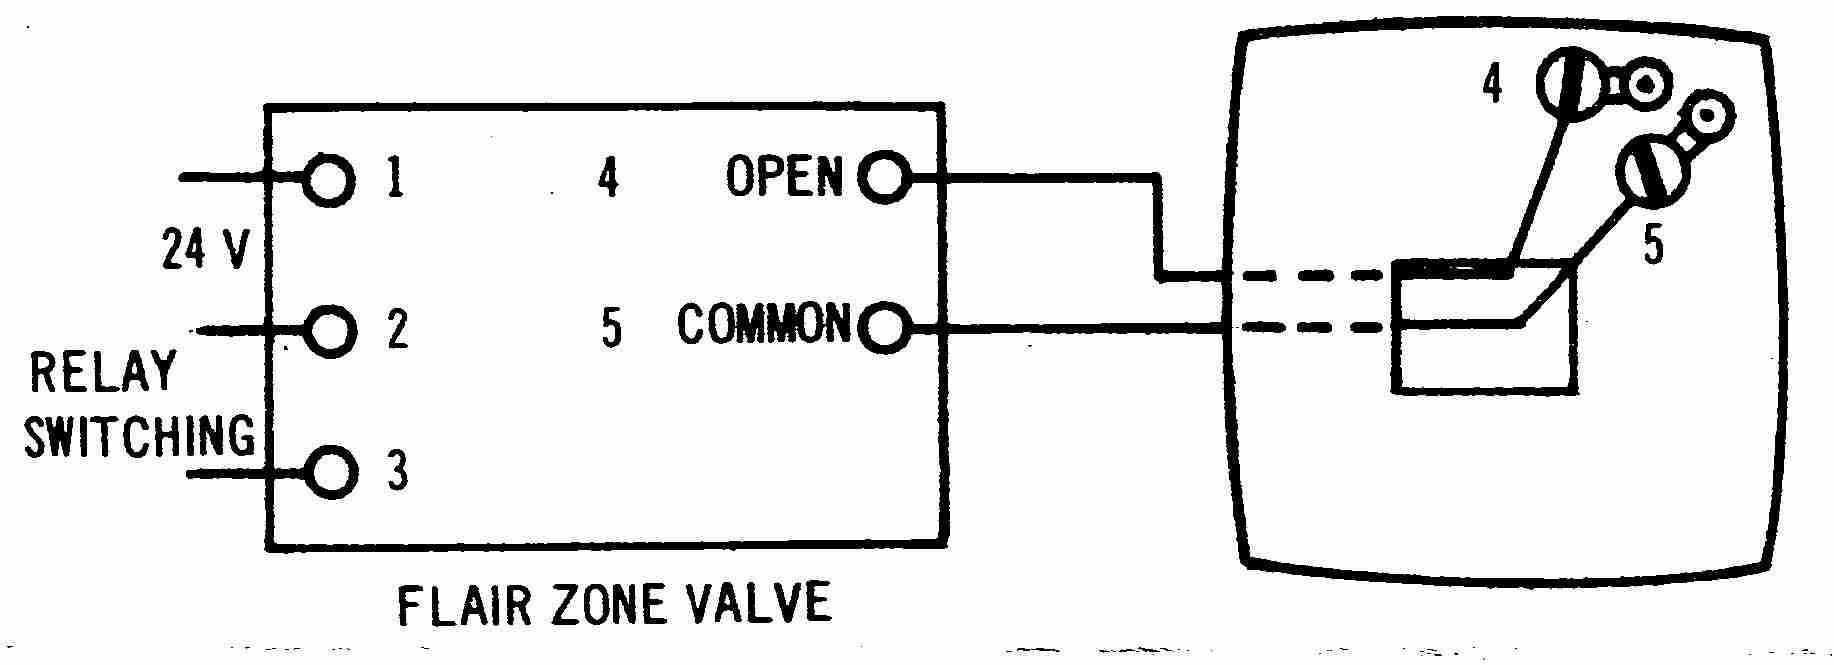 Flair2w_001_DJFc1 room thermostat wiring diagrams for hvac systems air conditioner relay wiring diagram at cos-gaming.co